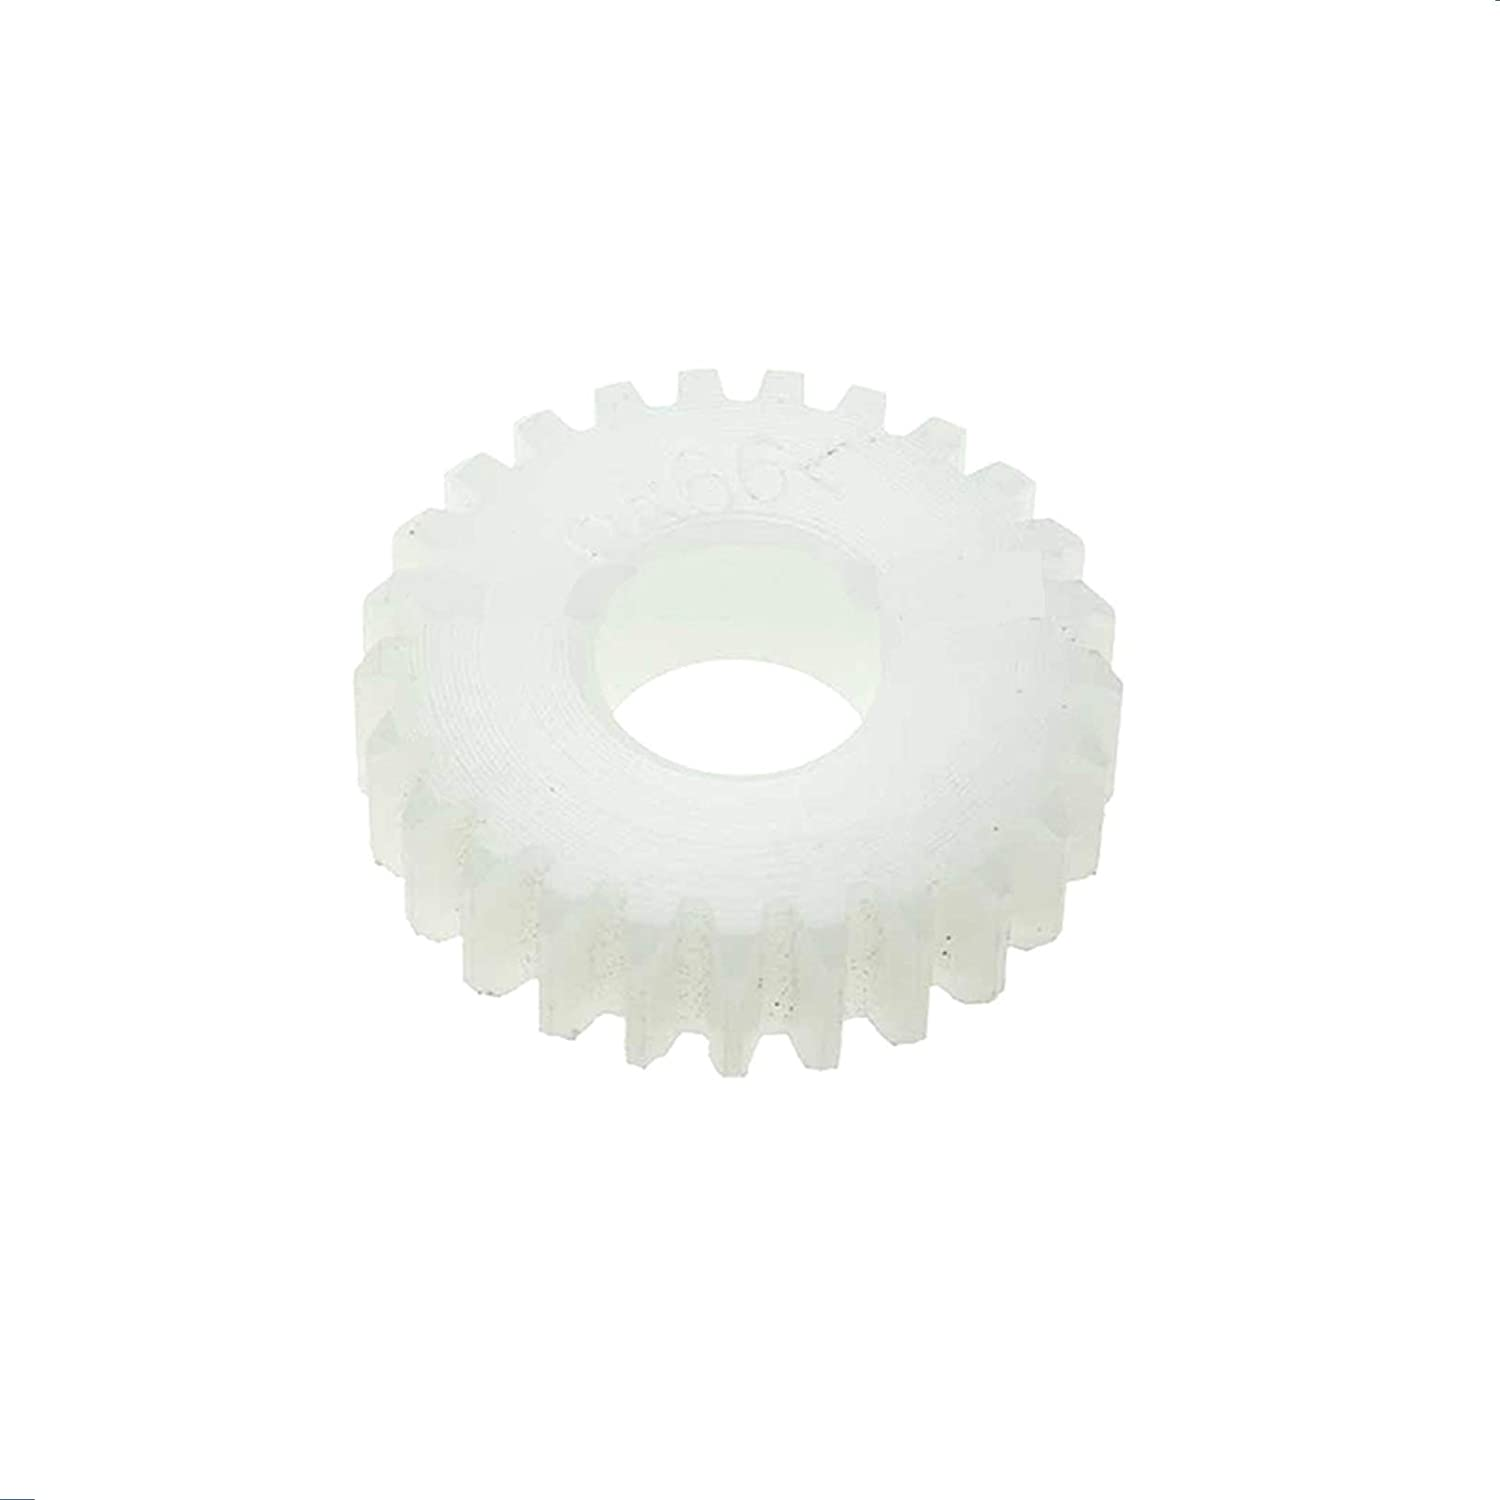 KHJK Fixed price for sale CHFENG-GG Pinions 25T Gears Superlatite Lathe 0618-039 C2-039 Acces